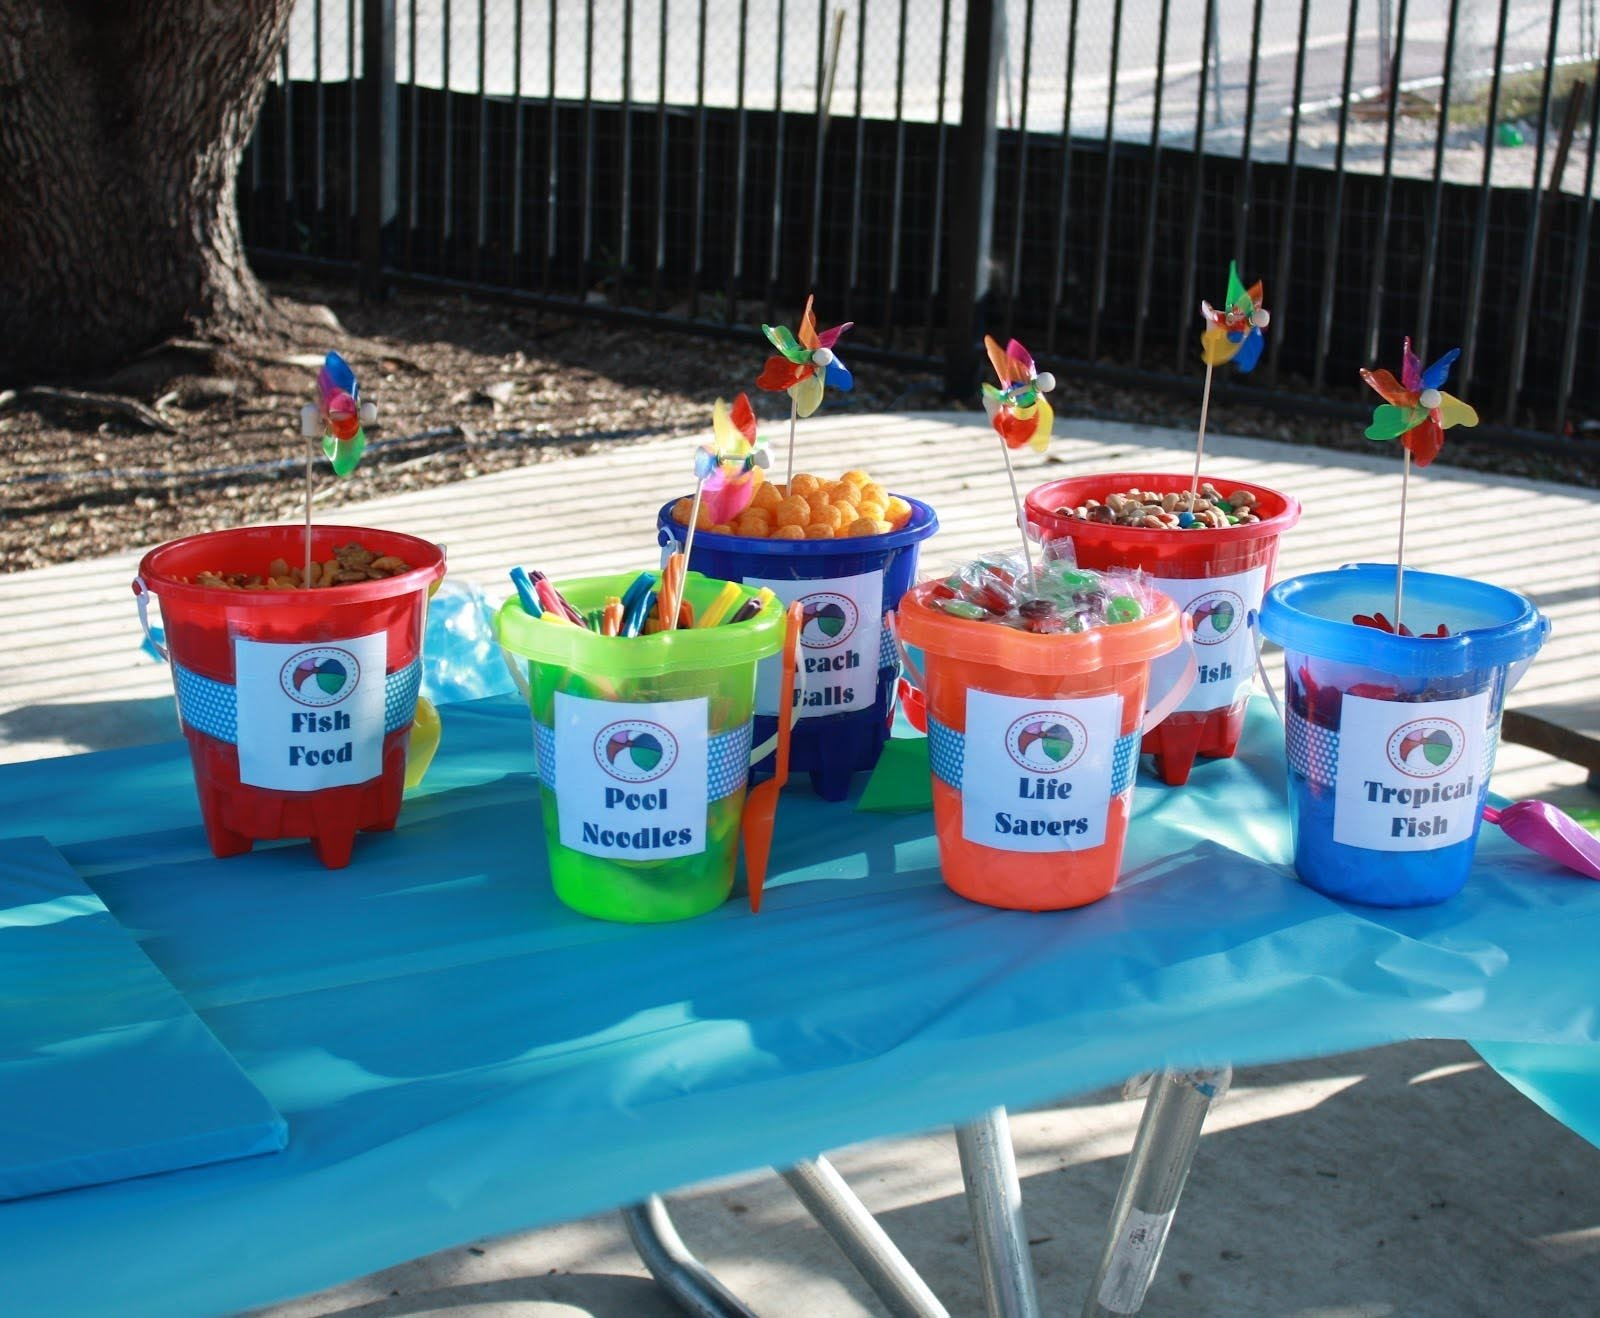 10 Great Ideas For A Pool Party pool birthday party ideas birthday party pinterest birthday 2020